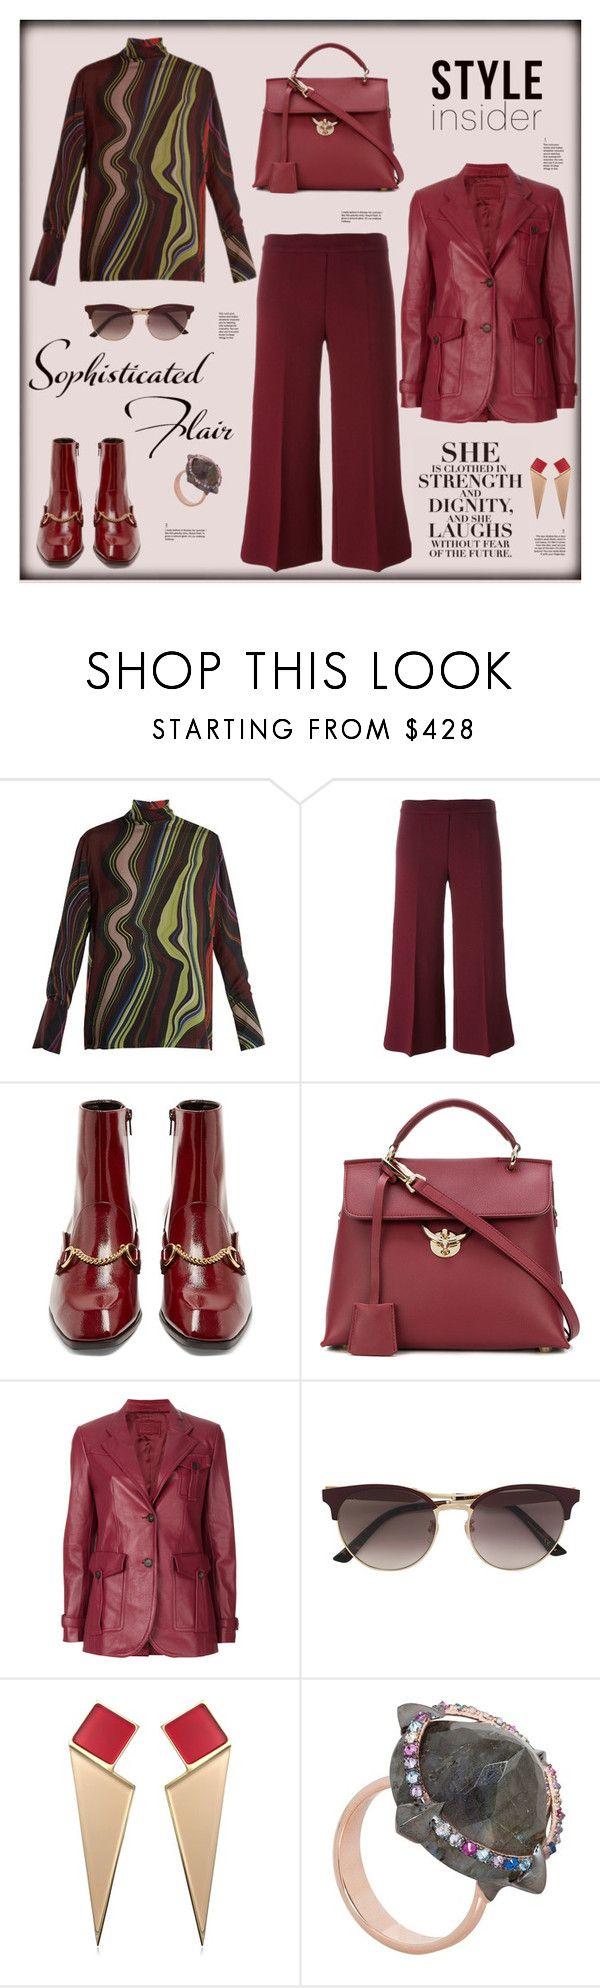 """""""Style insider"""" by zabead ❤ liked on Polyvore featuring BY. Bonnie Young, P.A.R.O.S.H., STELLA McCARTNEY, Salvatore Ferragamo, Prada, Gucci, Sylvio Giardina and Katie Rowland"""